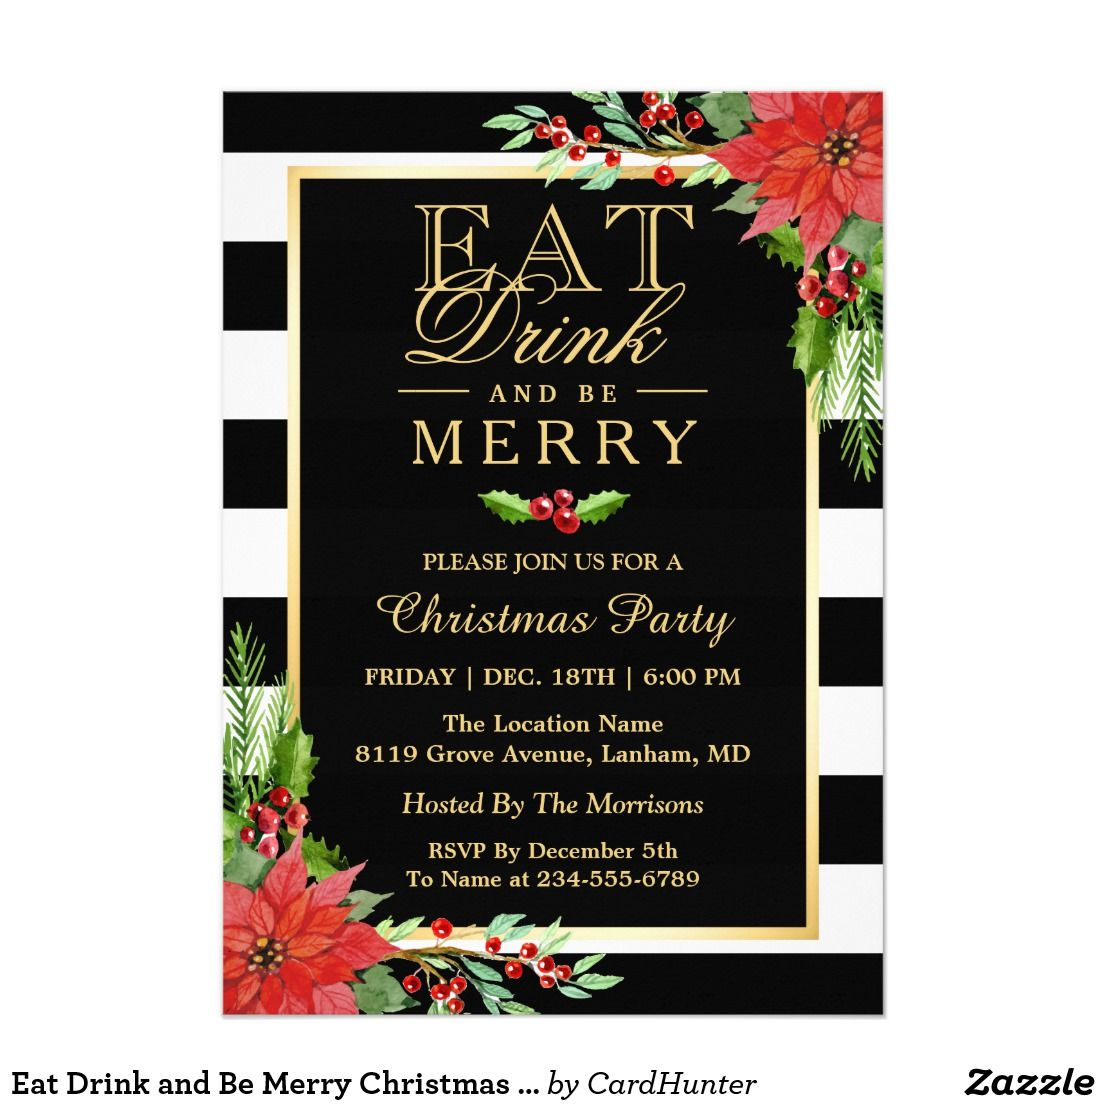 Eat Drink and Be Merry Christmas Party Invitation ...